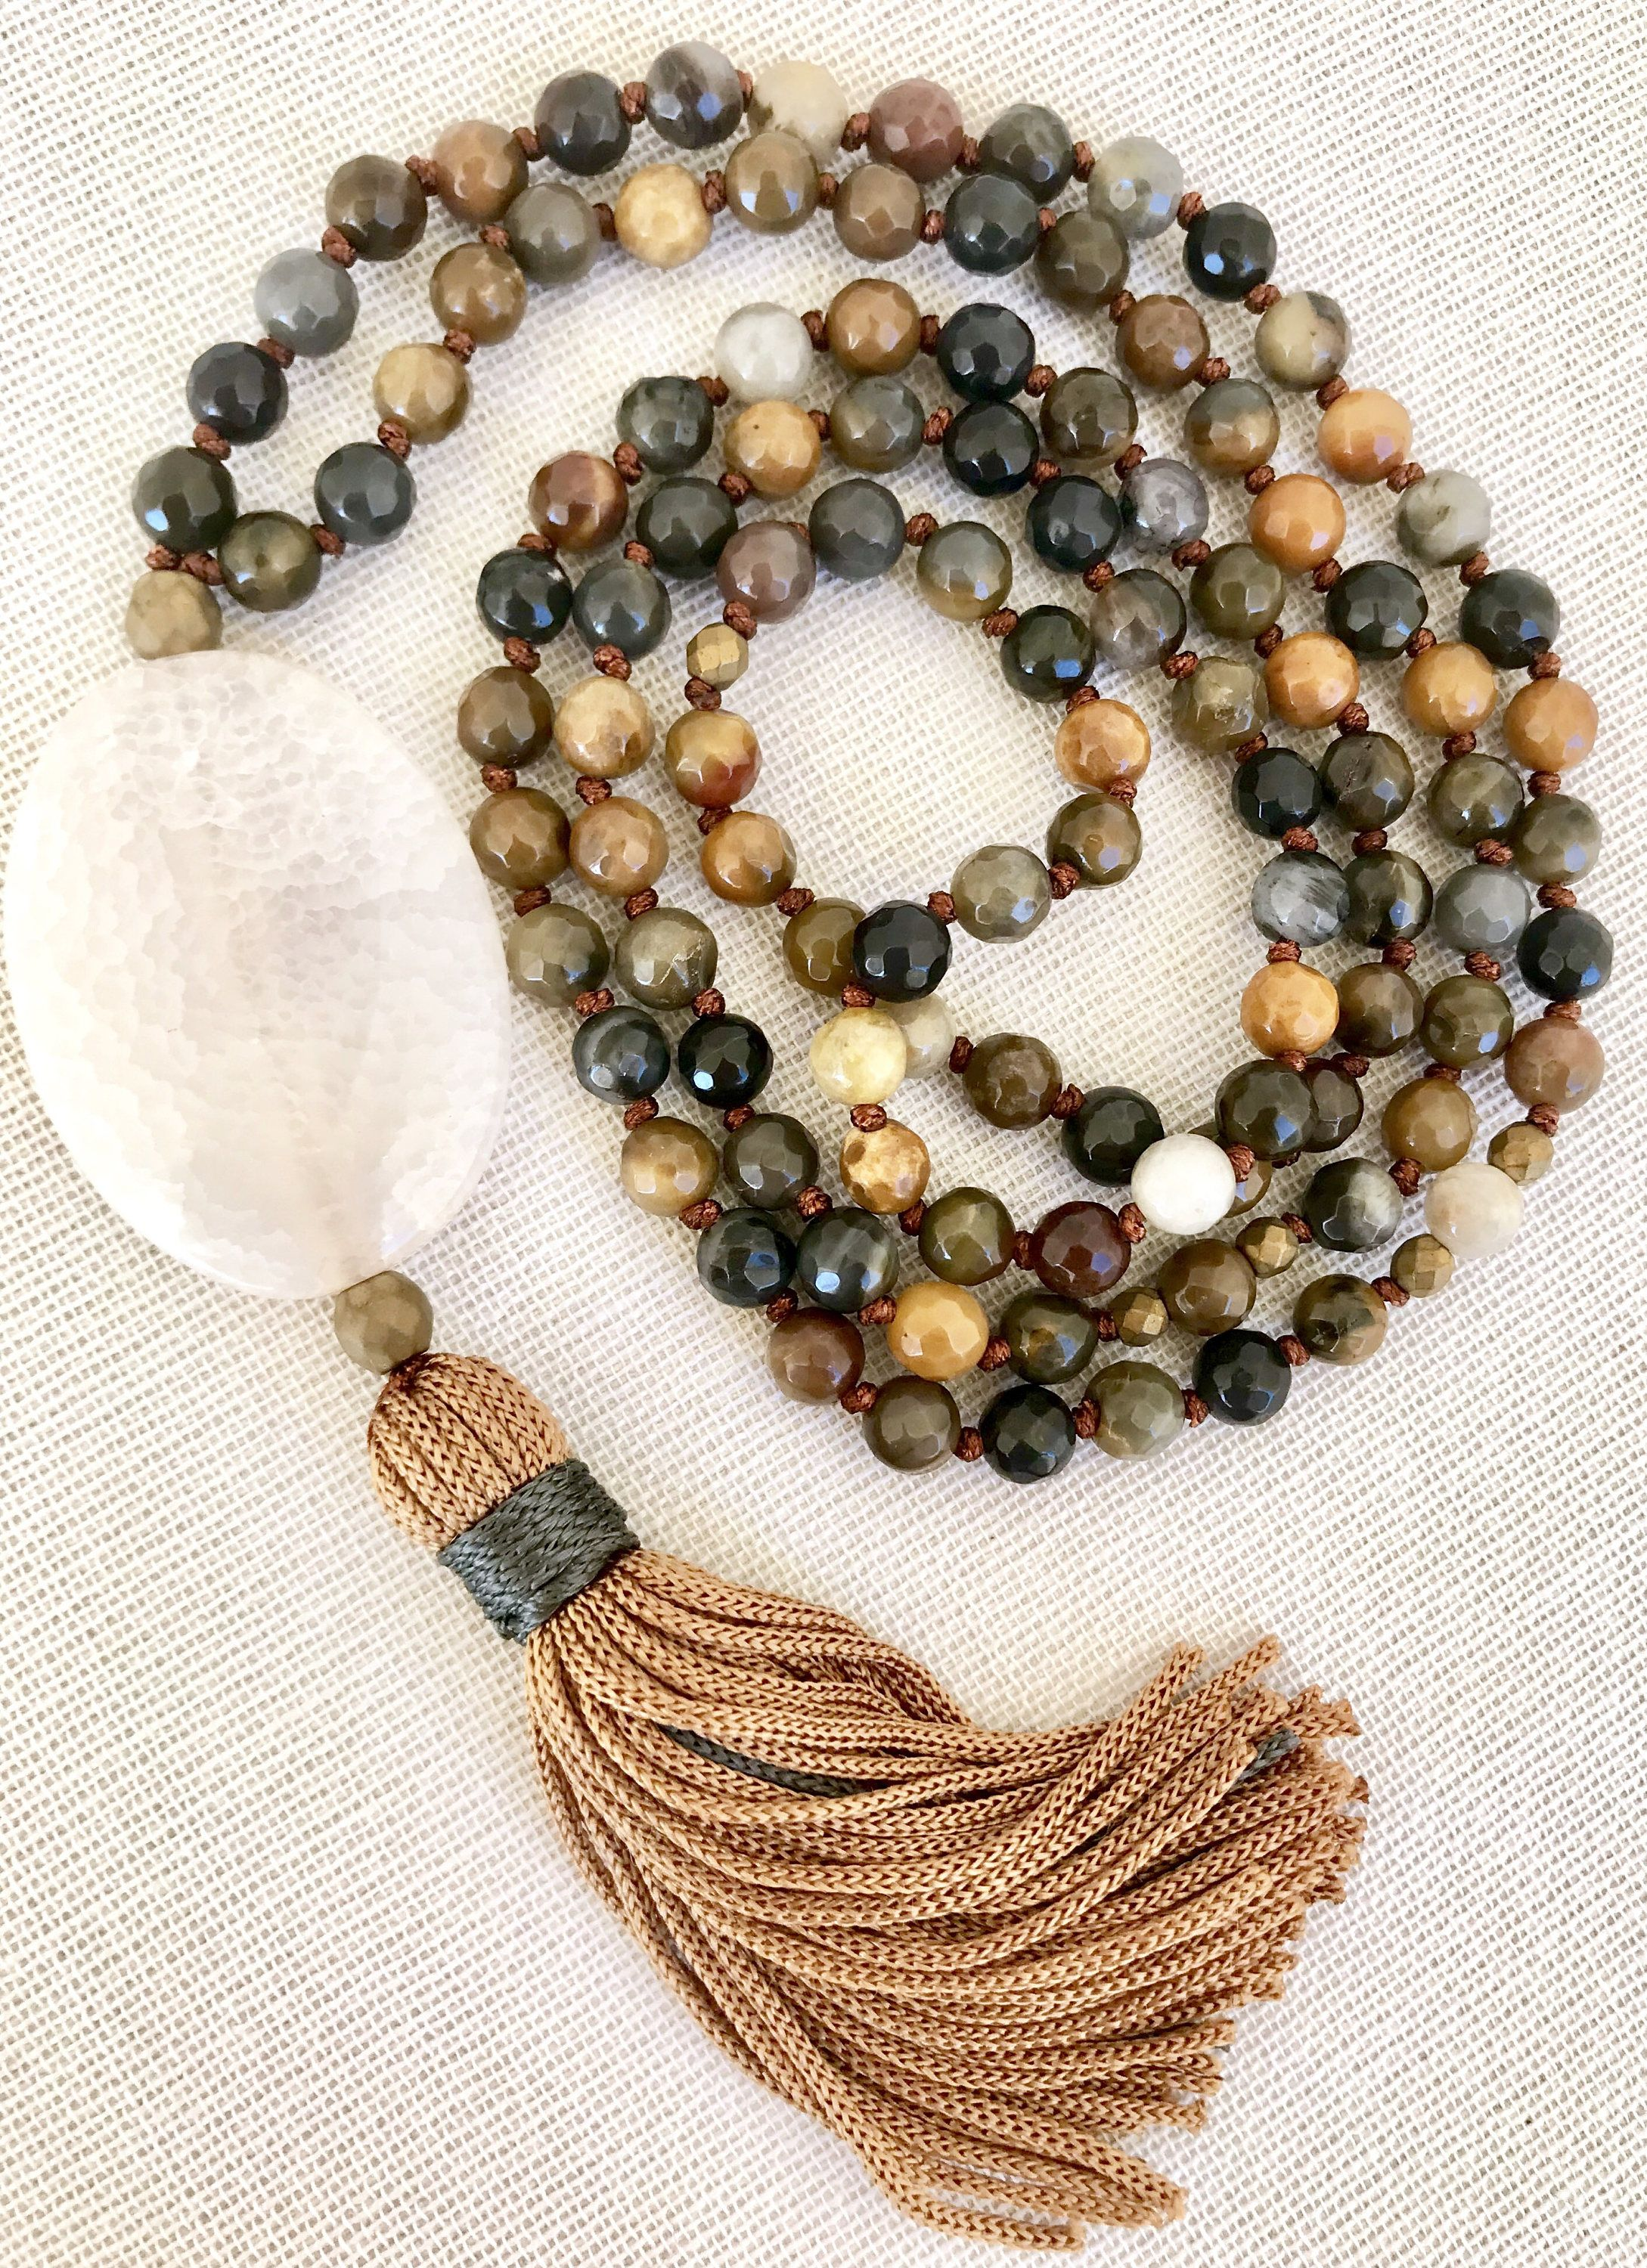 Yellow Agate Necklaces 108 Mala Beads 108 Mala Necklaces 108 Knotted Mala Yoga Beads Mala Tassel Necklaces 108 Yoga Necklace Long Necklace